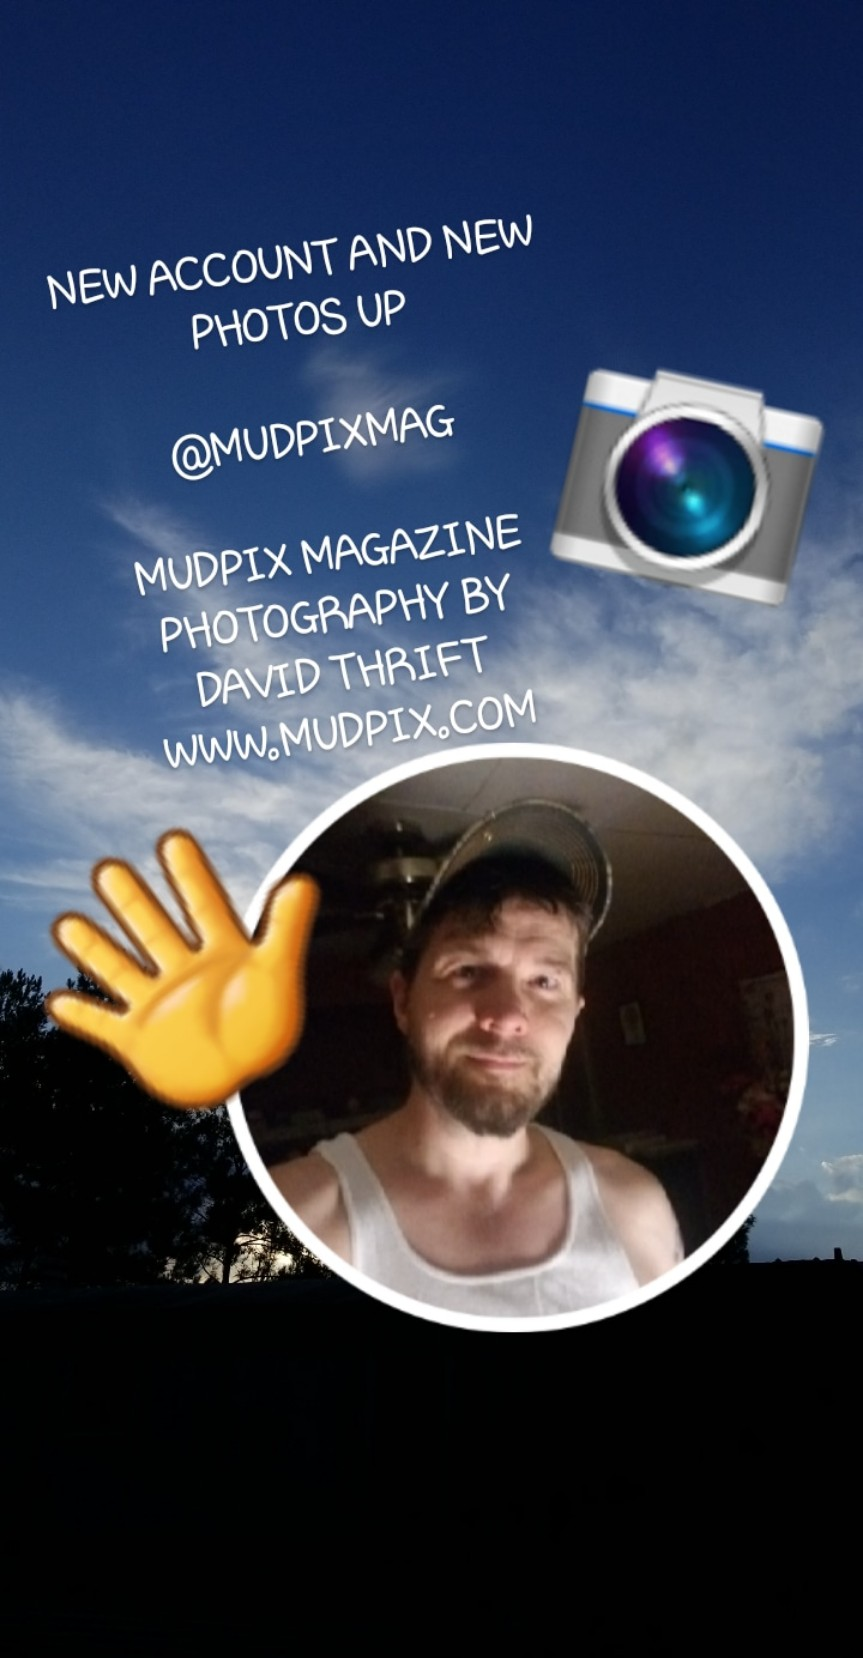 New Instagram Account For MUDPIX MAGAZINE